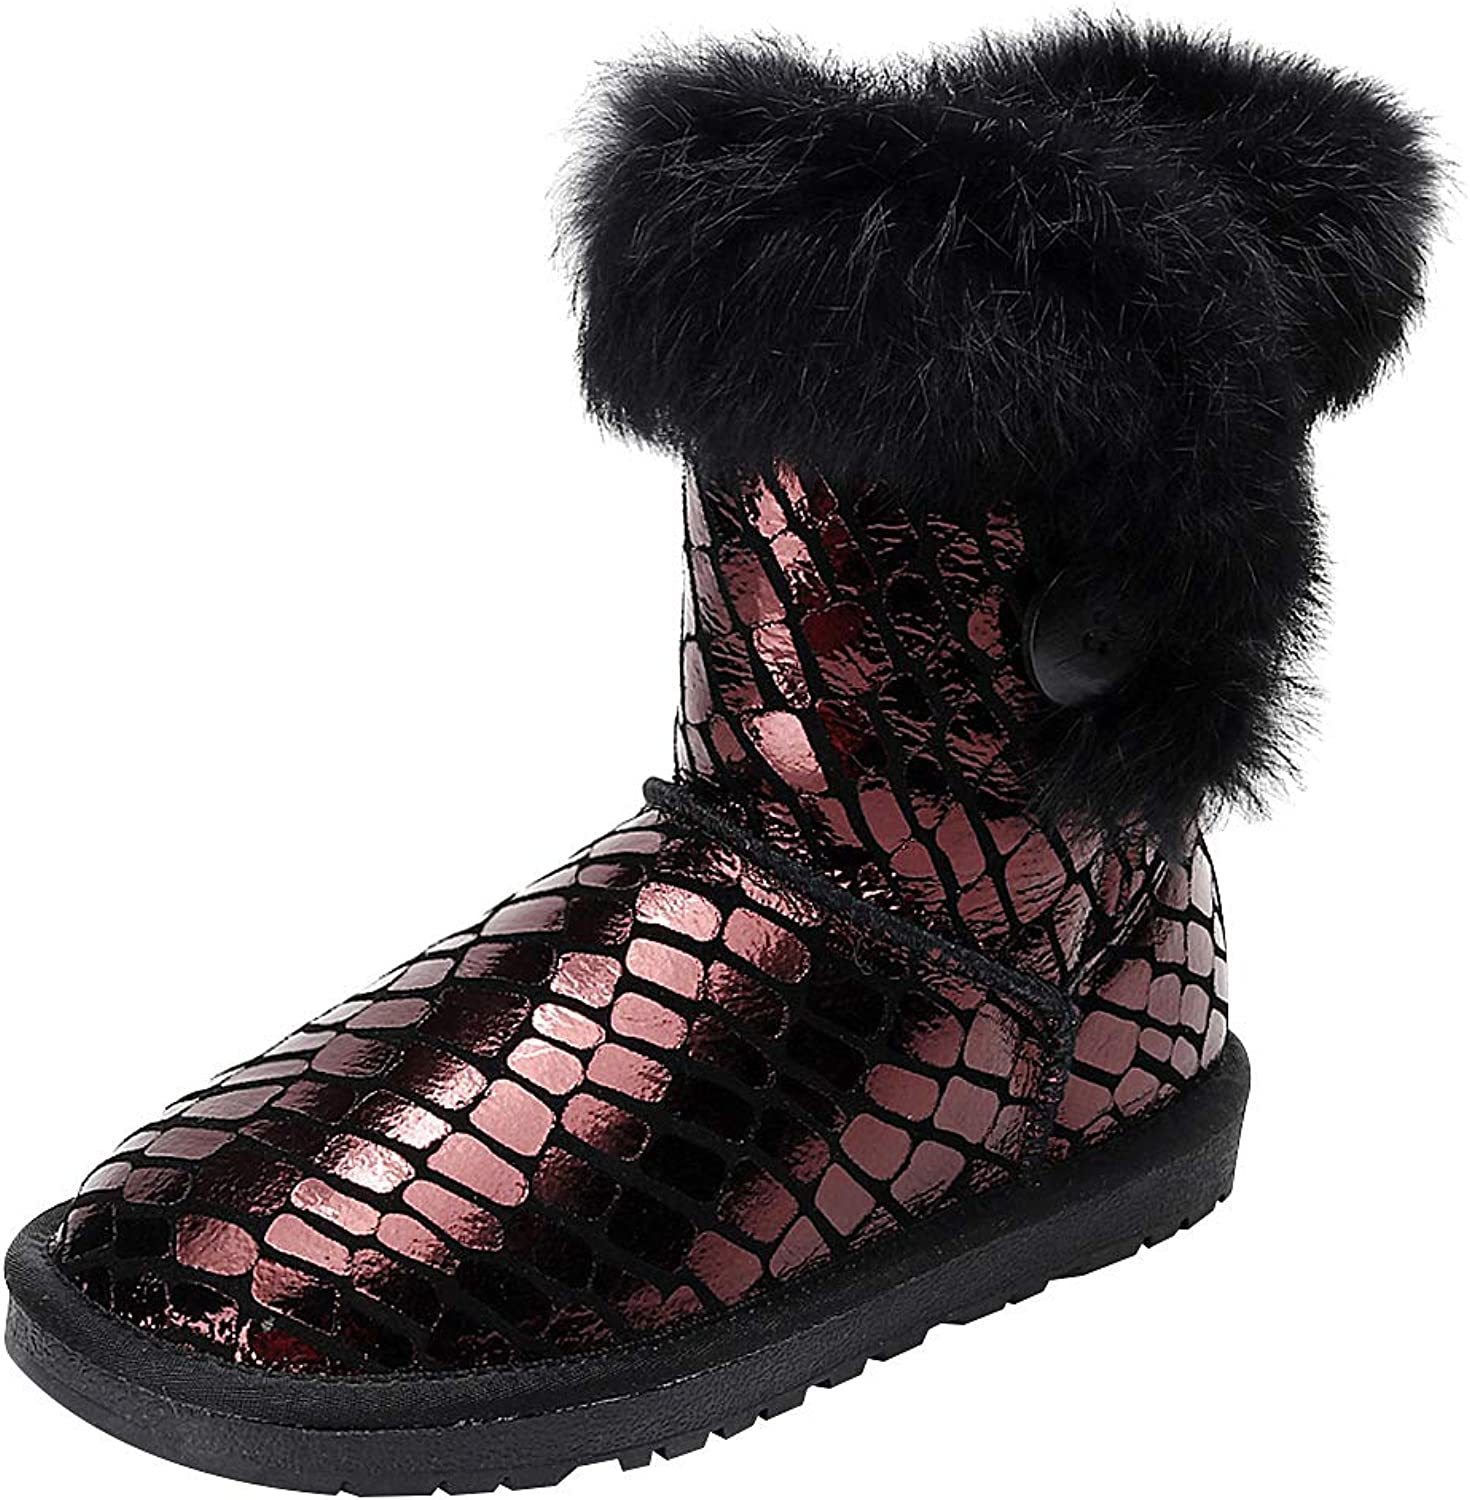 Rismart Women's Mid Calf Warmth Button Trendy Handcrafted Snow Boots